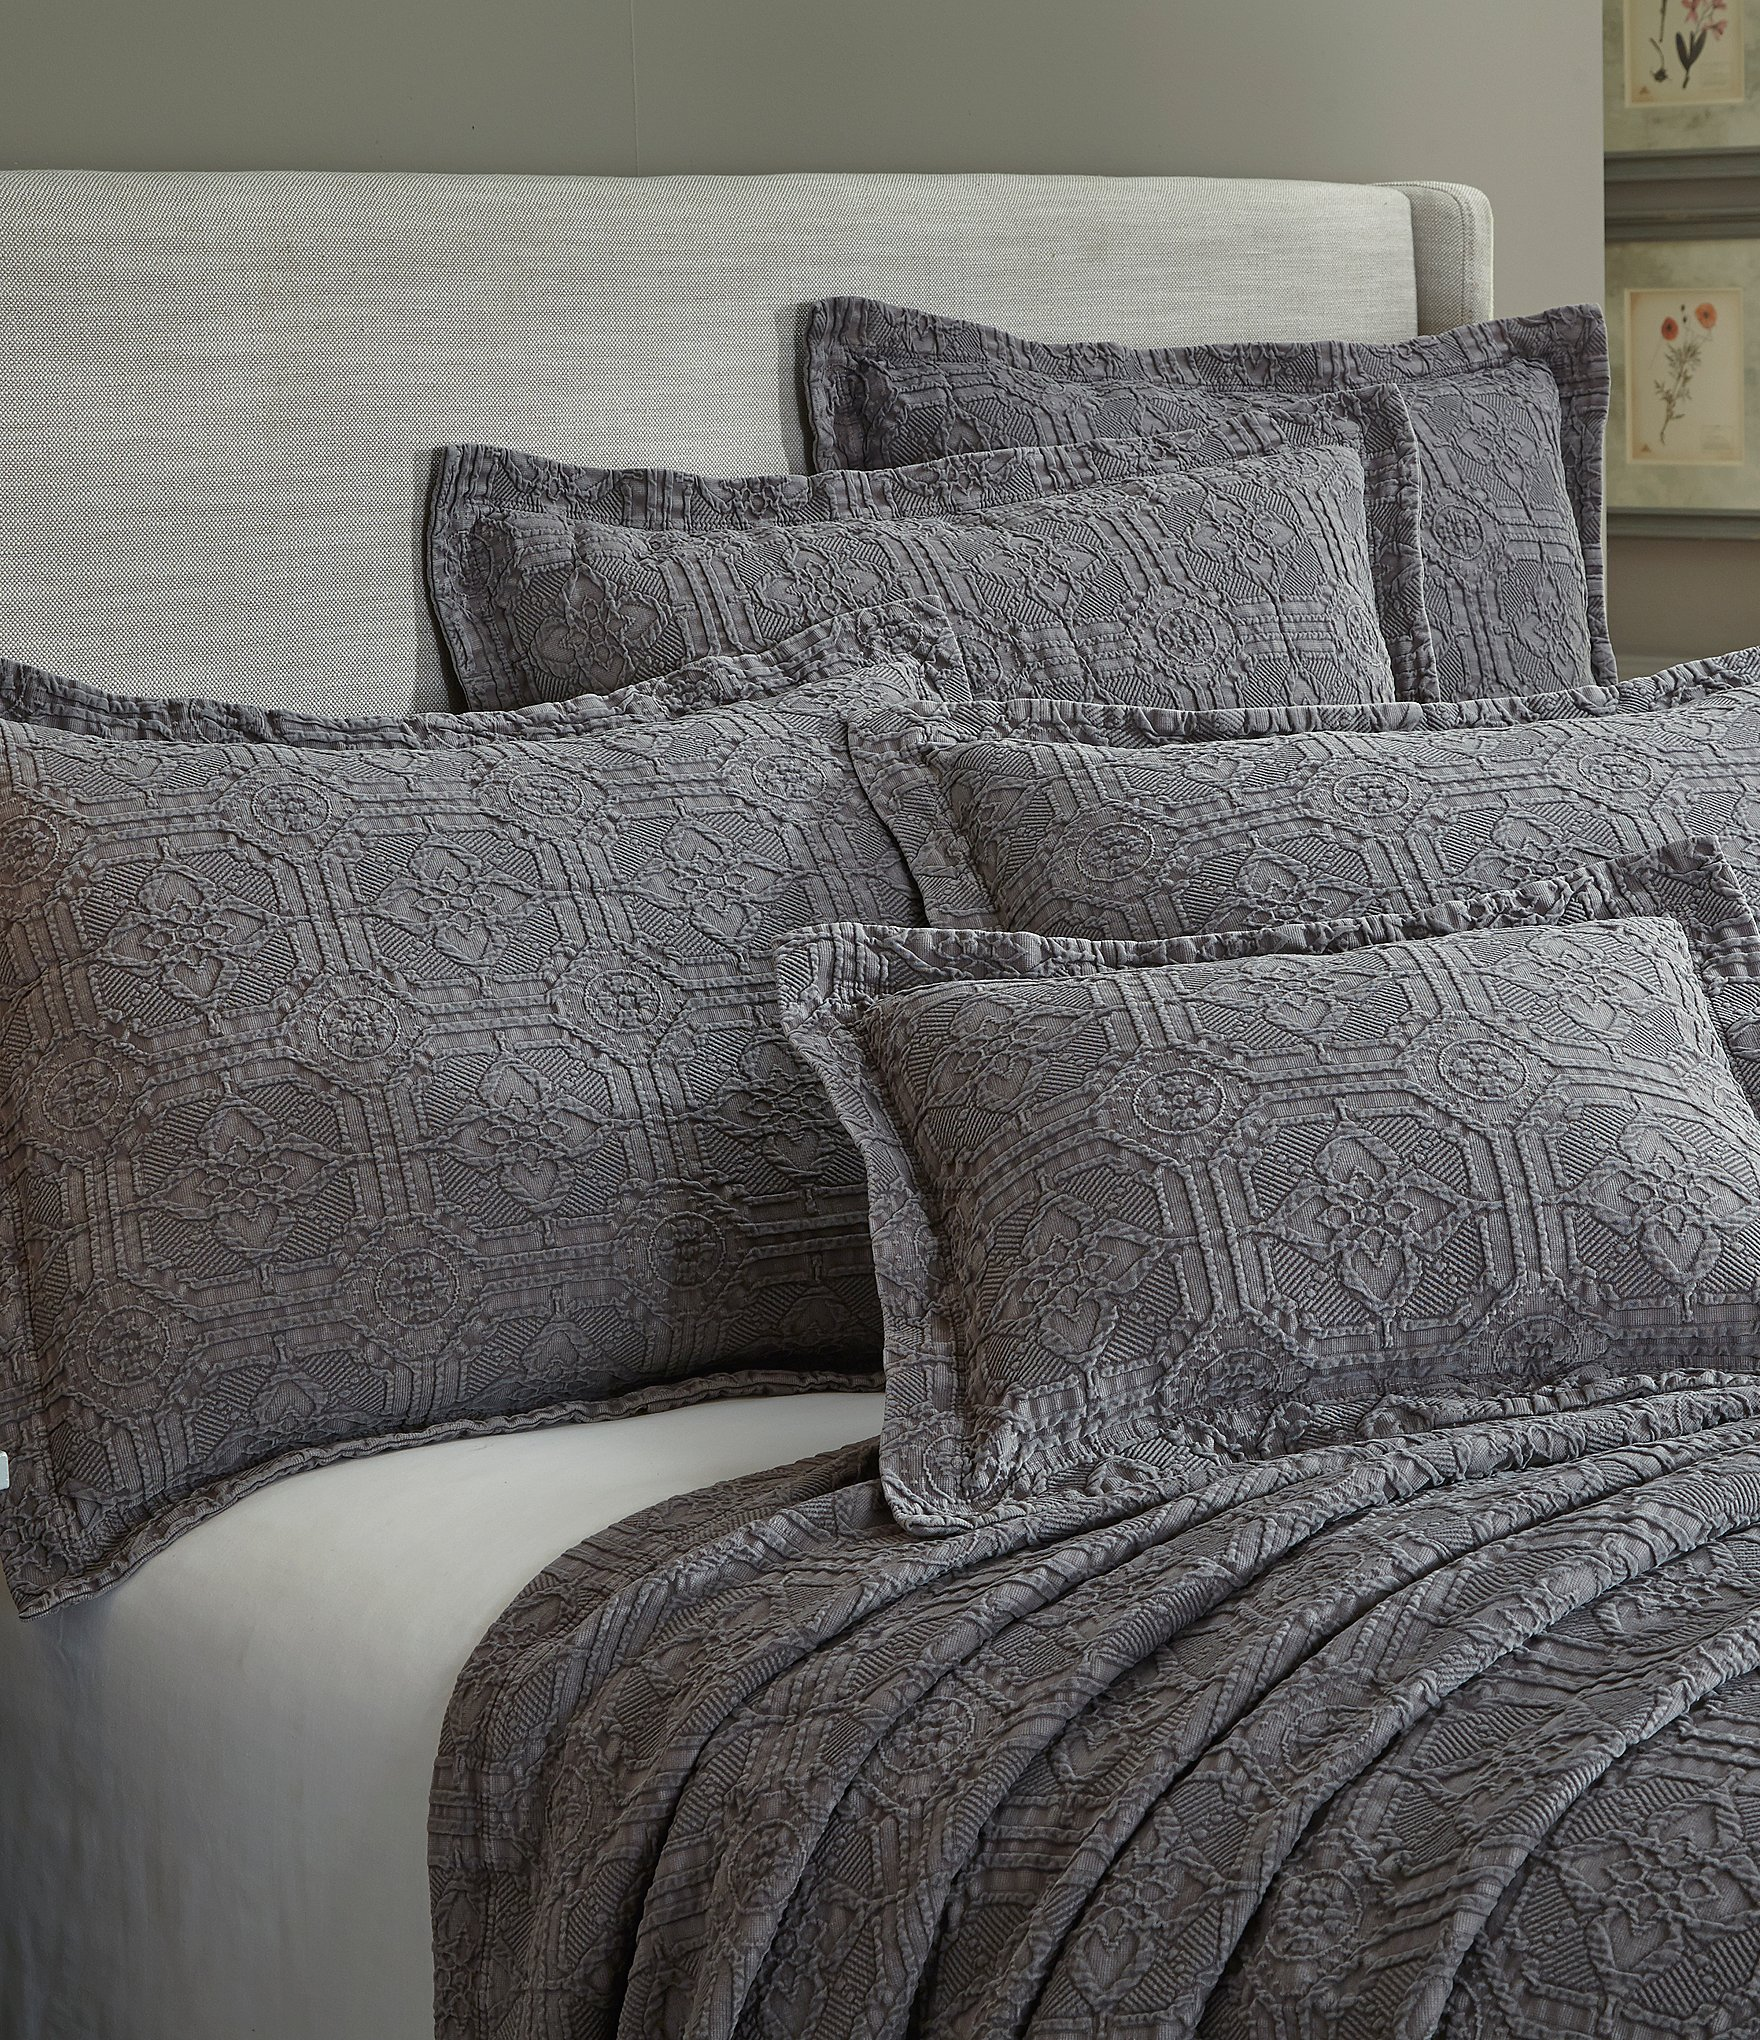 Bedding & Bedding Collections| Dillards : dkny coverlets quilts - Adamdwight.com